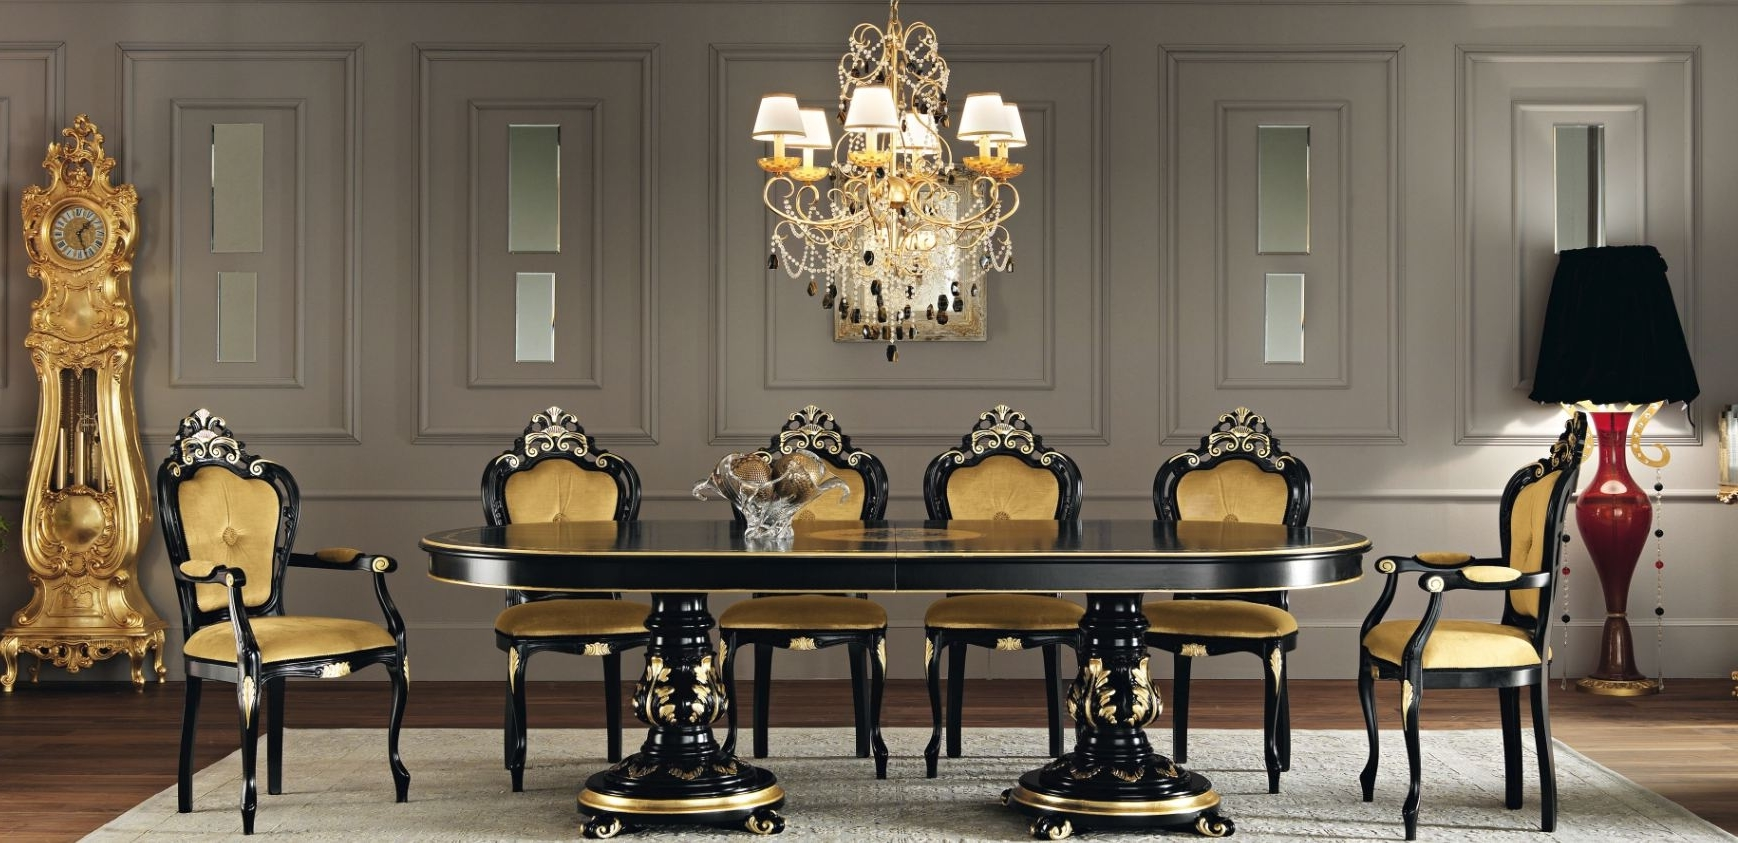 Featured Image of Formal And Classic Italian Dining Room Luxury Nuance